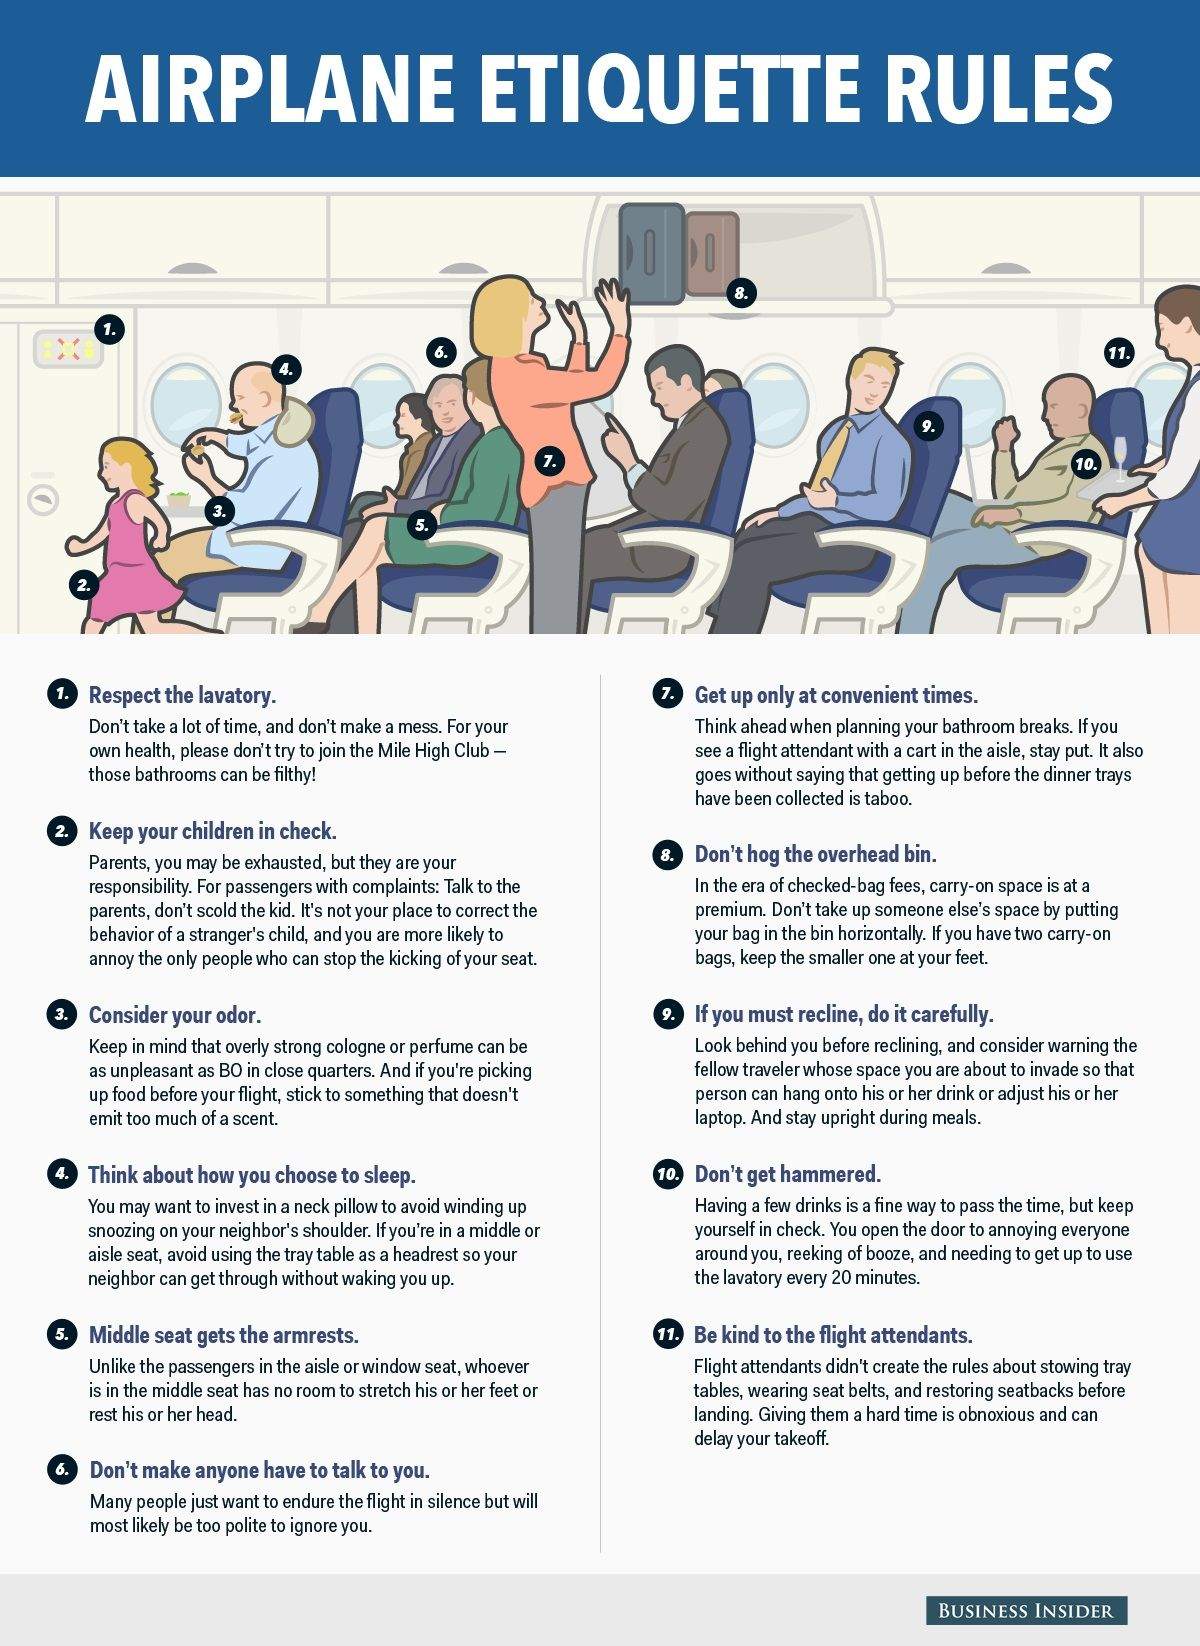 11 Air Travel Etiquette Rules That Every Passenger Should